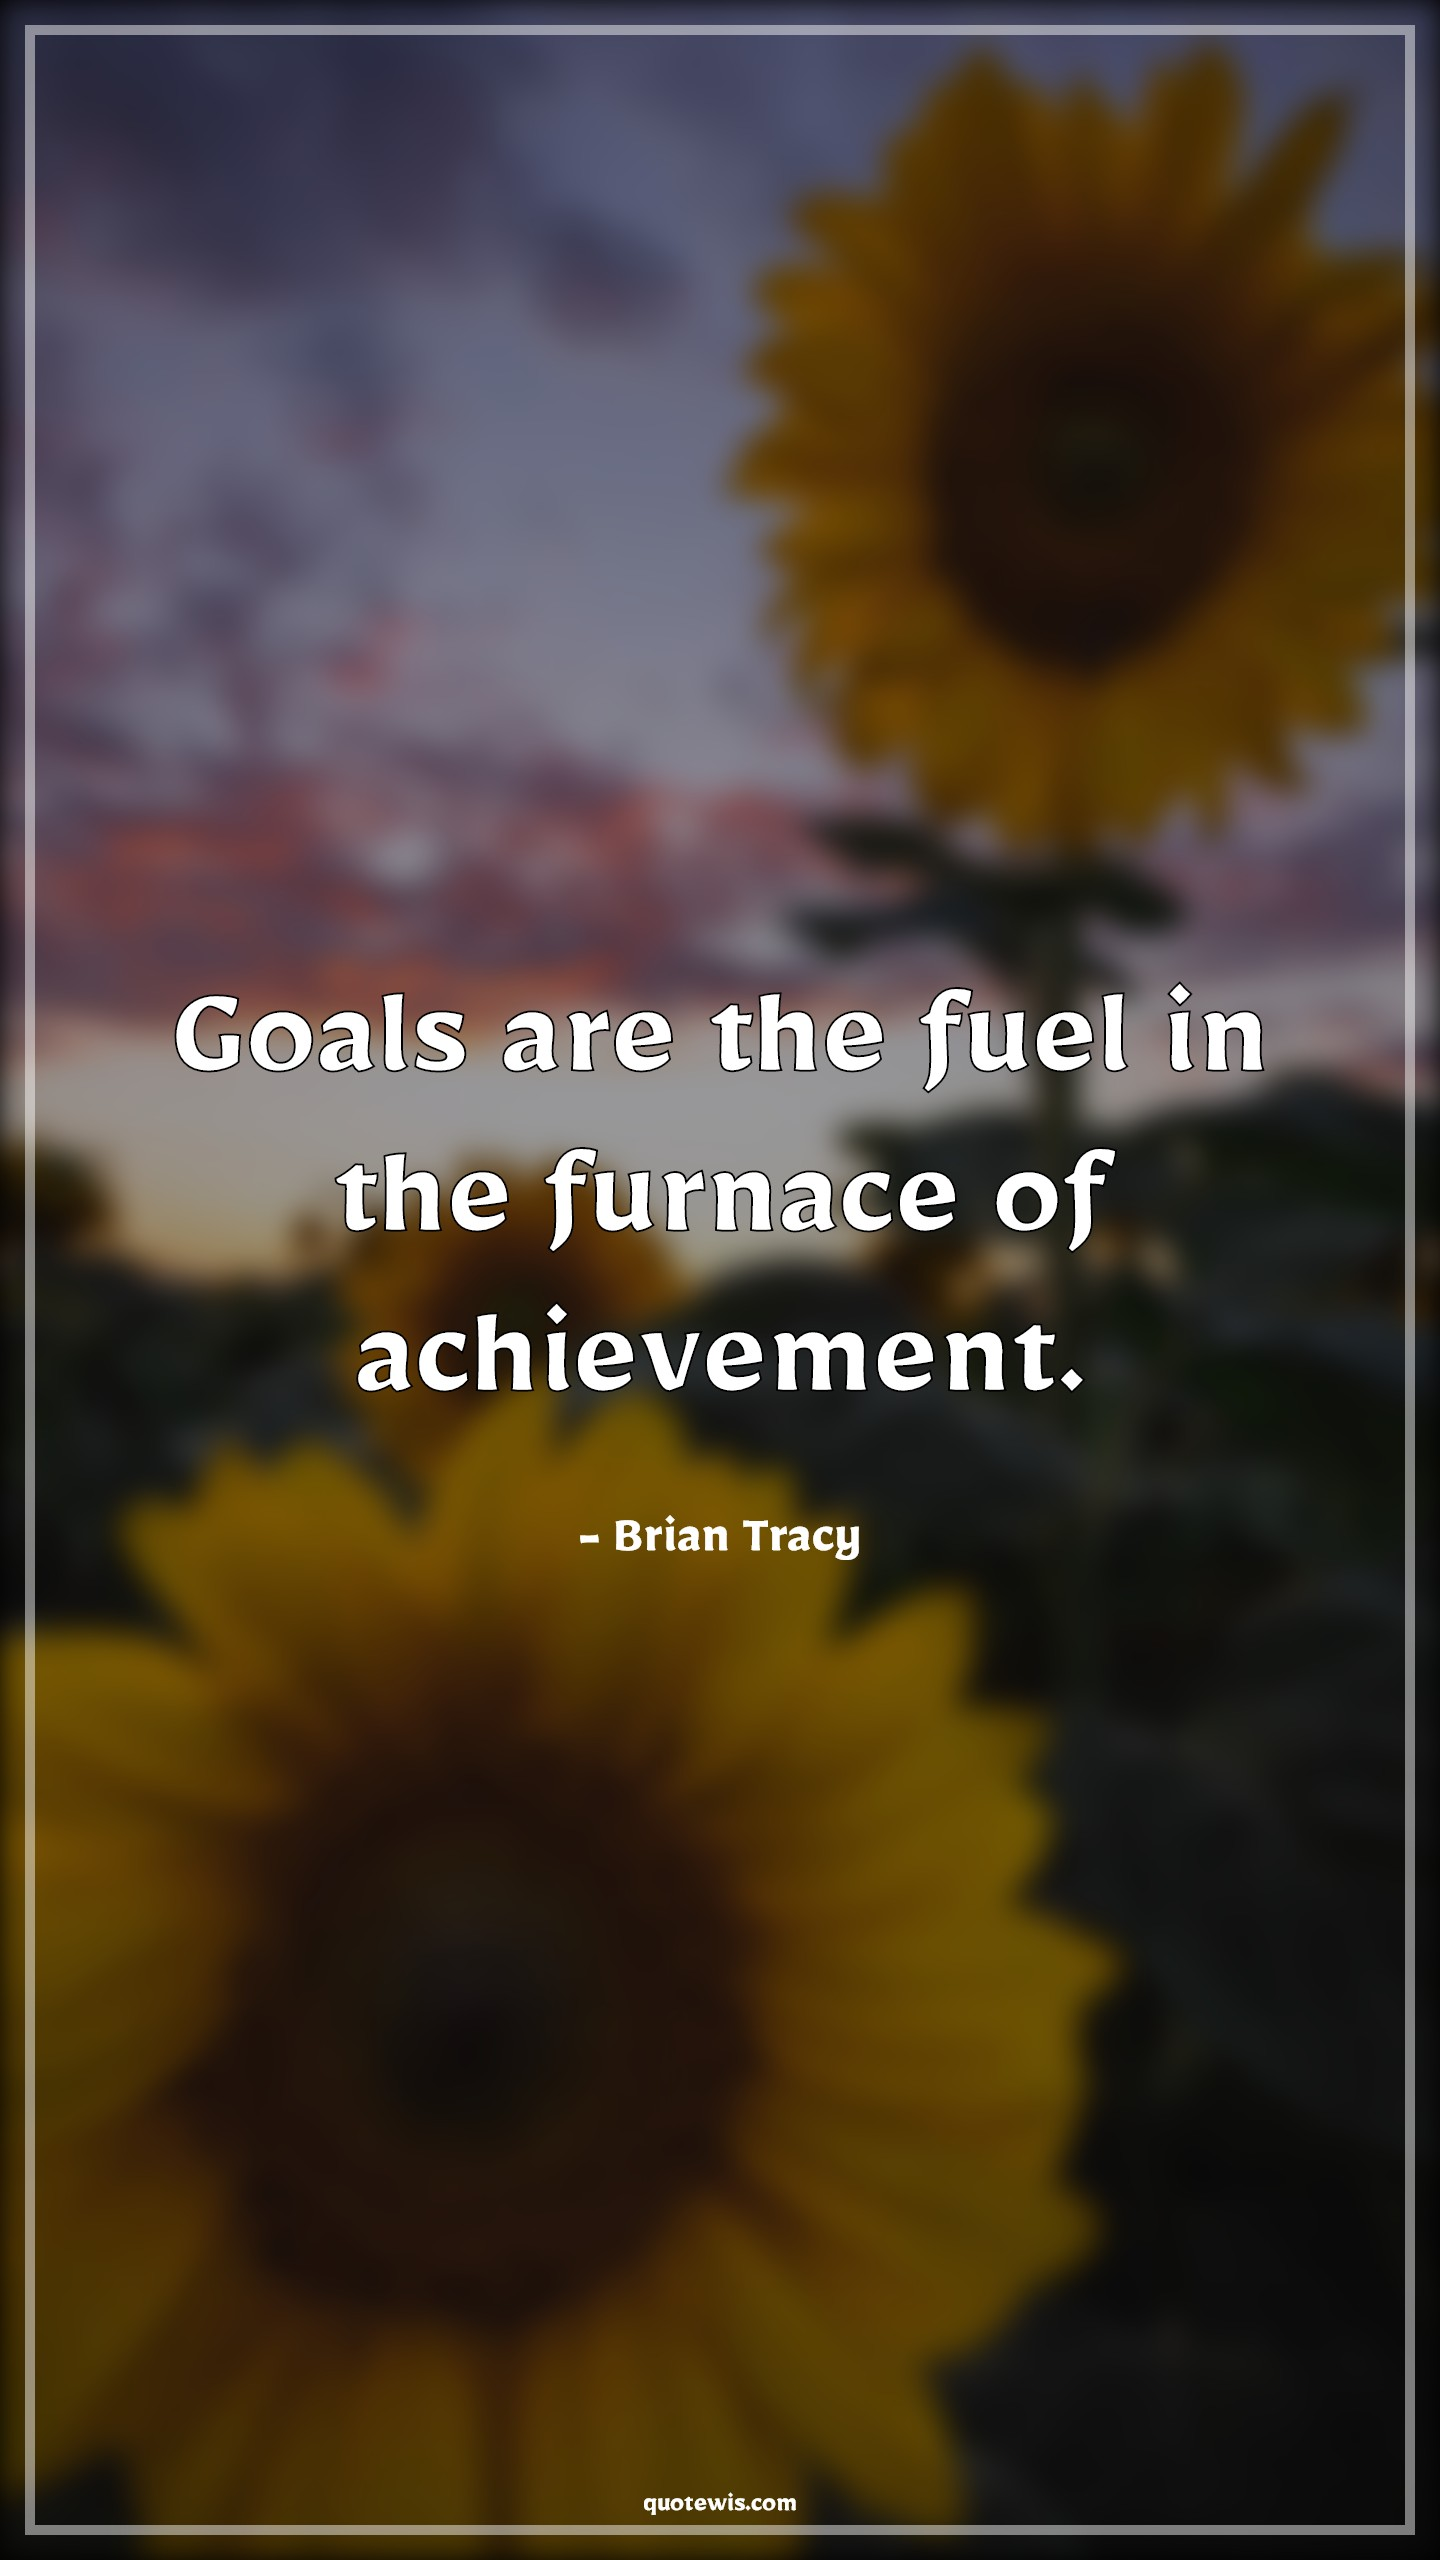 Goals are the fuel in the furnace of achievement.